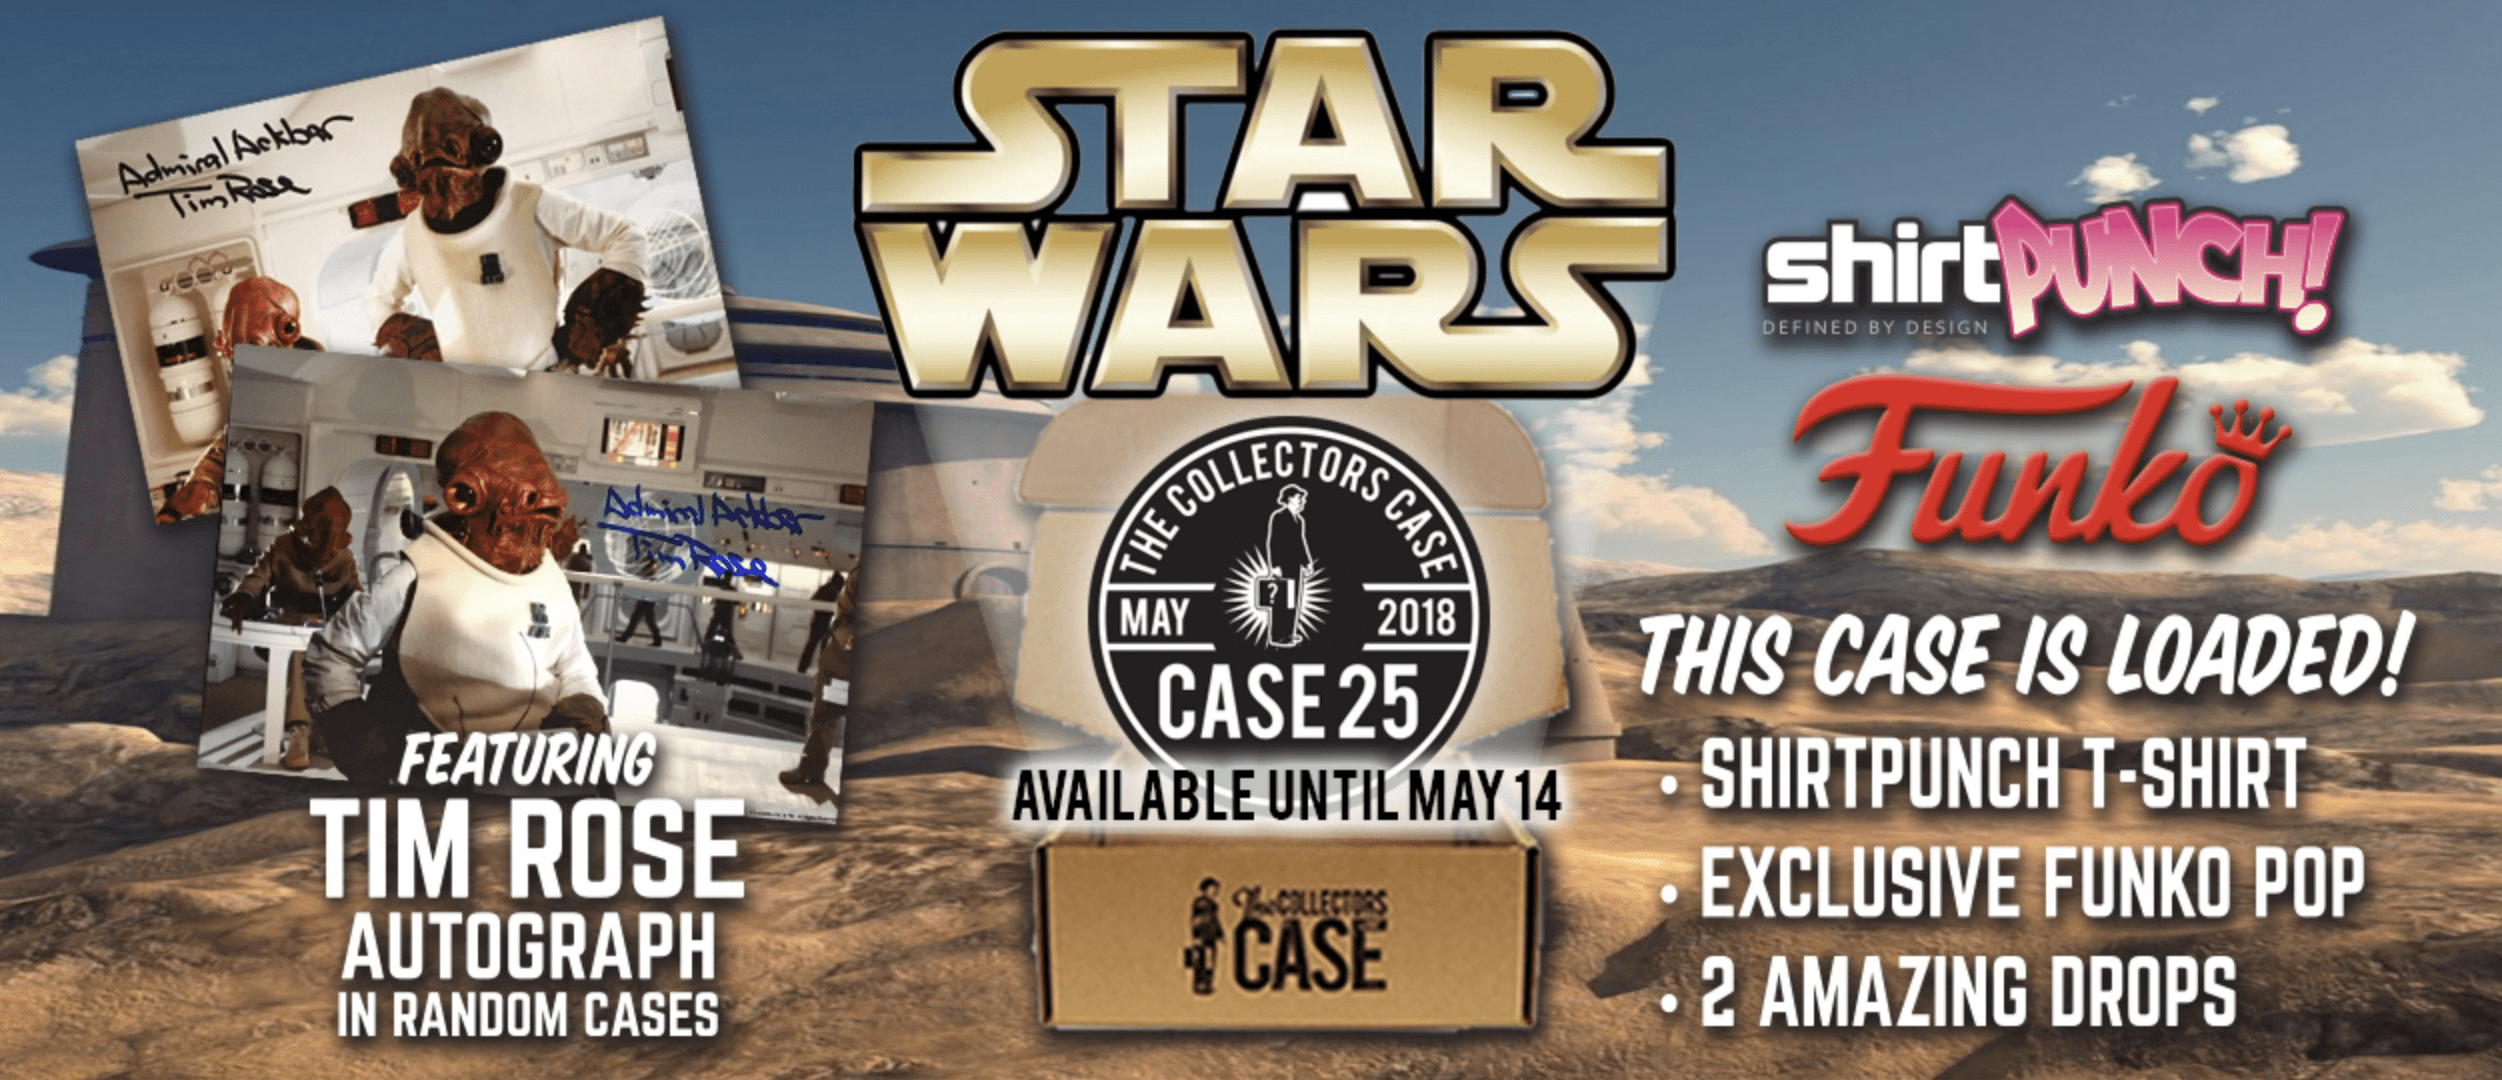 The Collectors Case May 2018 Spoilers!